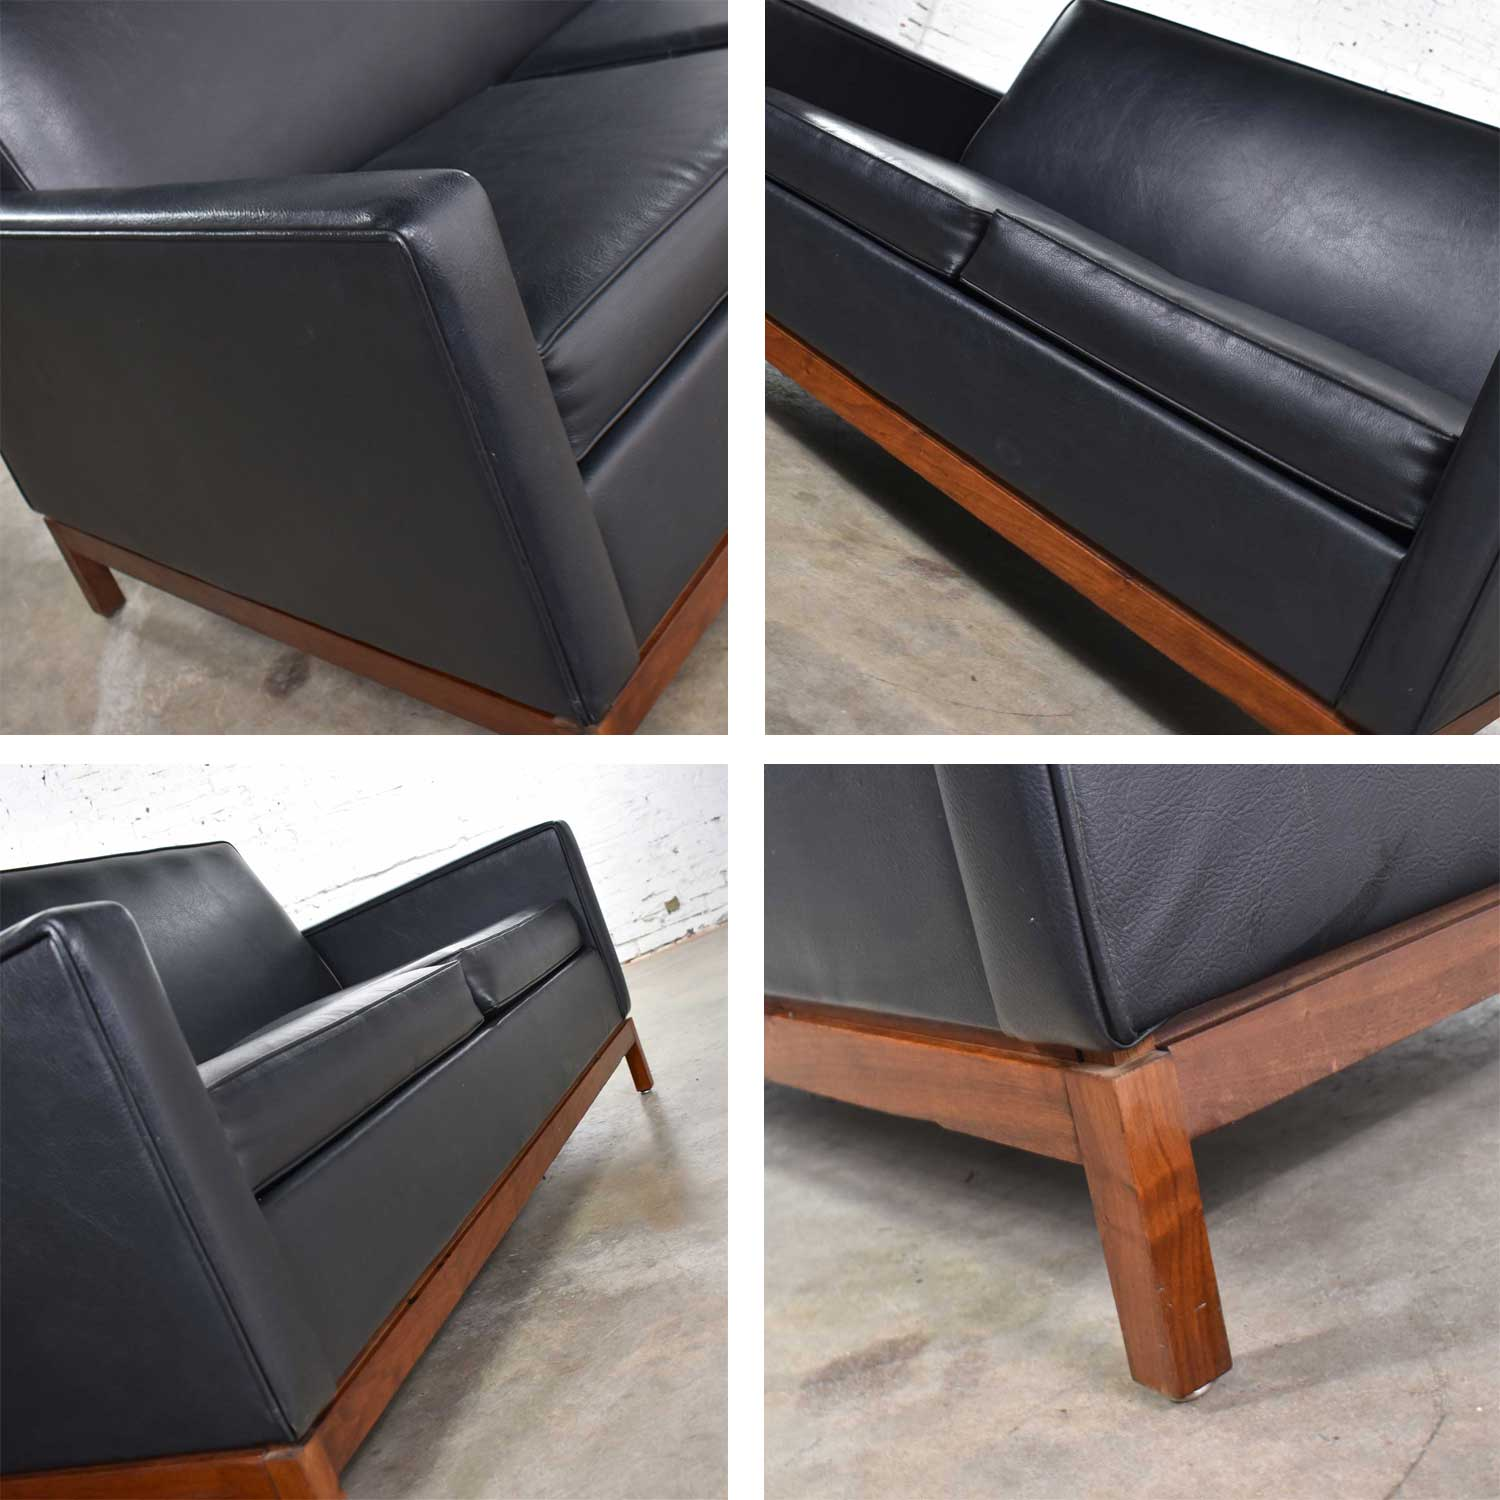 Mid Century Modern Black Faux Leather Love Seat Sofa By Taylor Chair Co Style Dunbar Warehouse 414